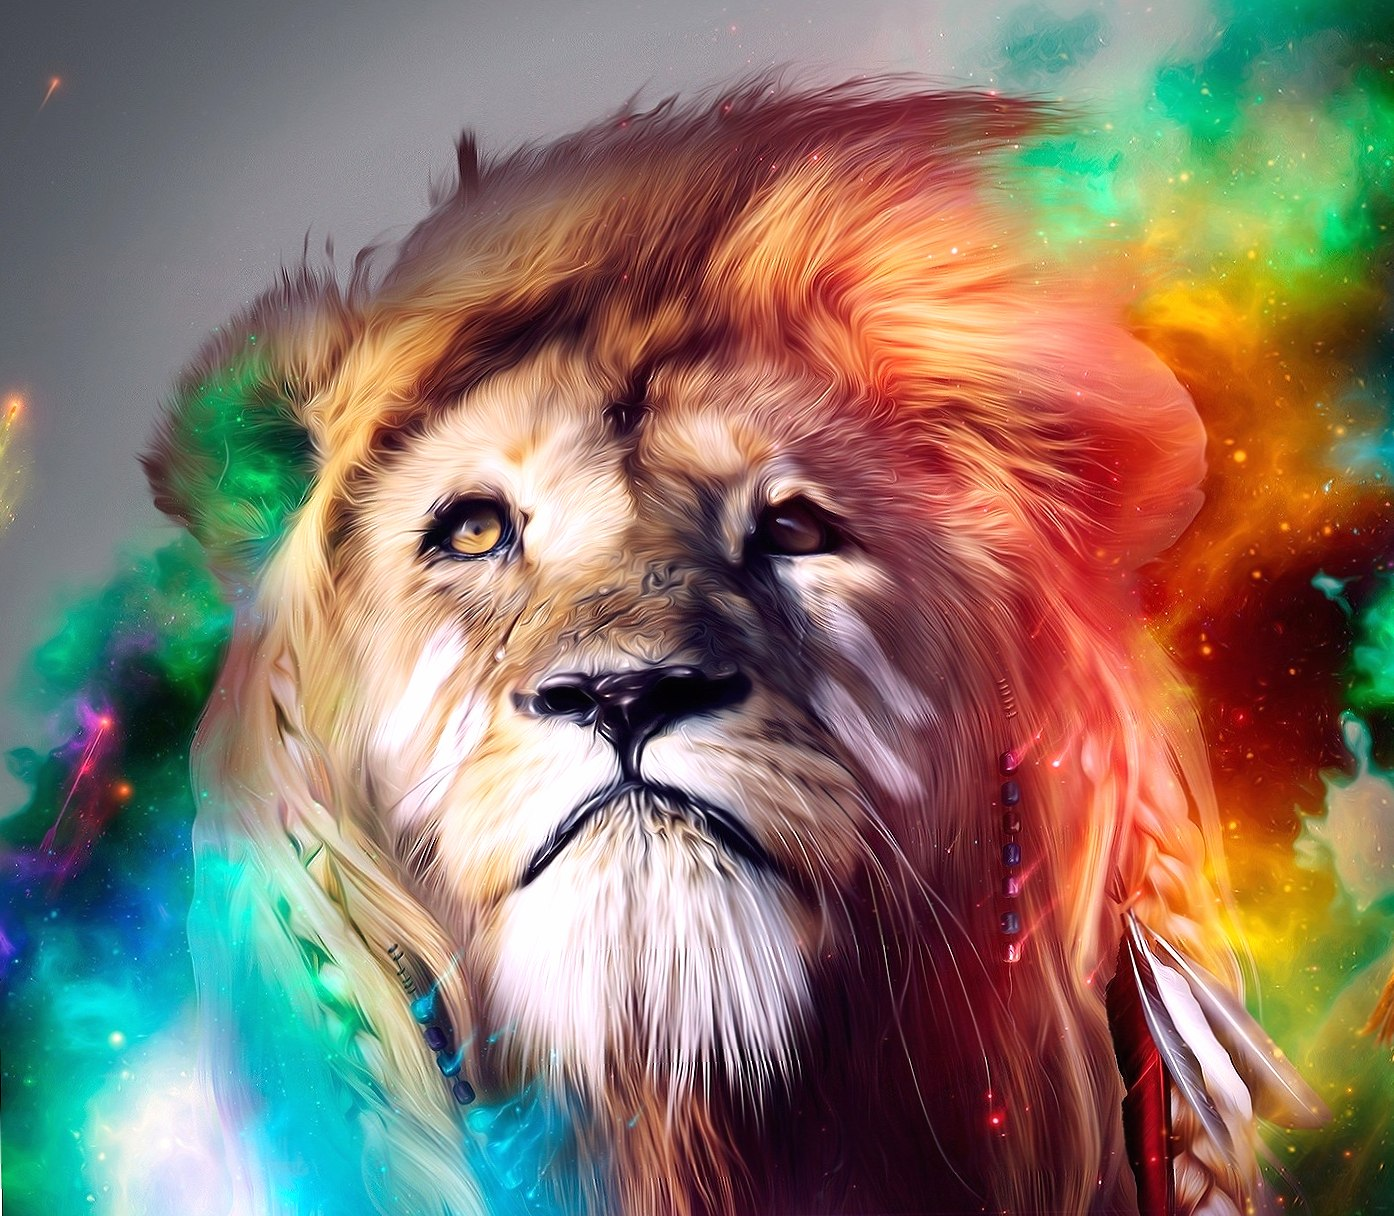 Abstract Lion wallpapers HD quality